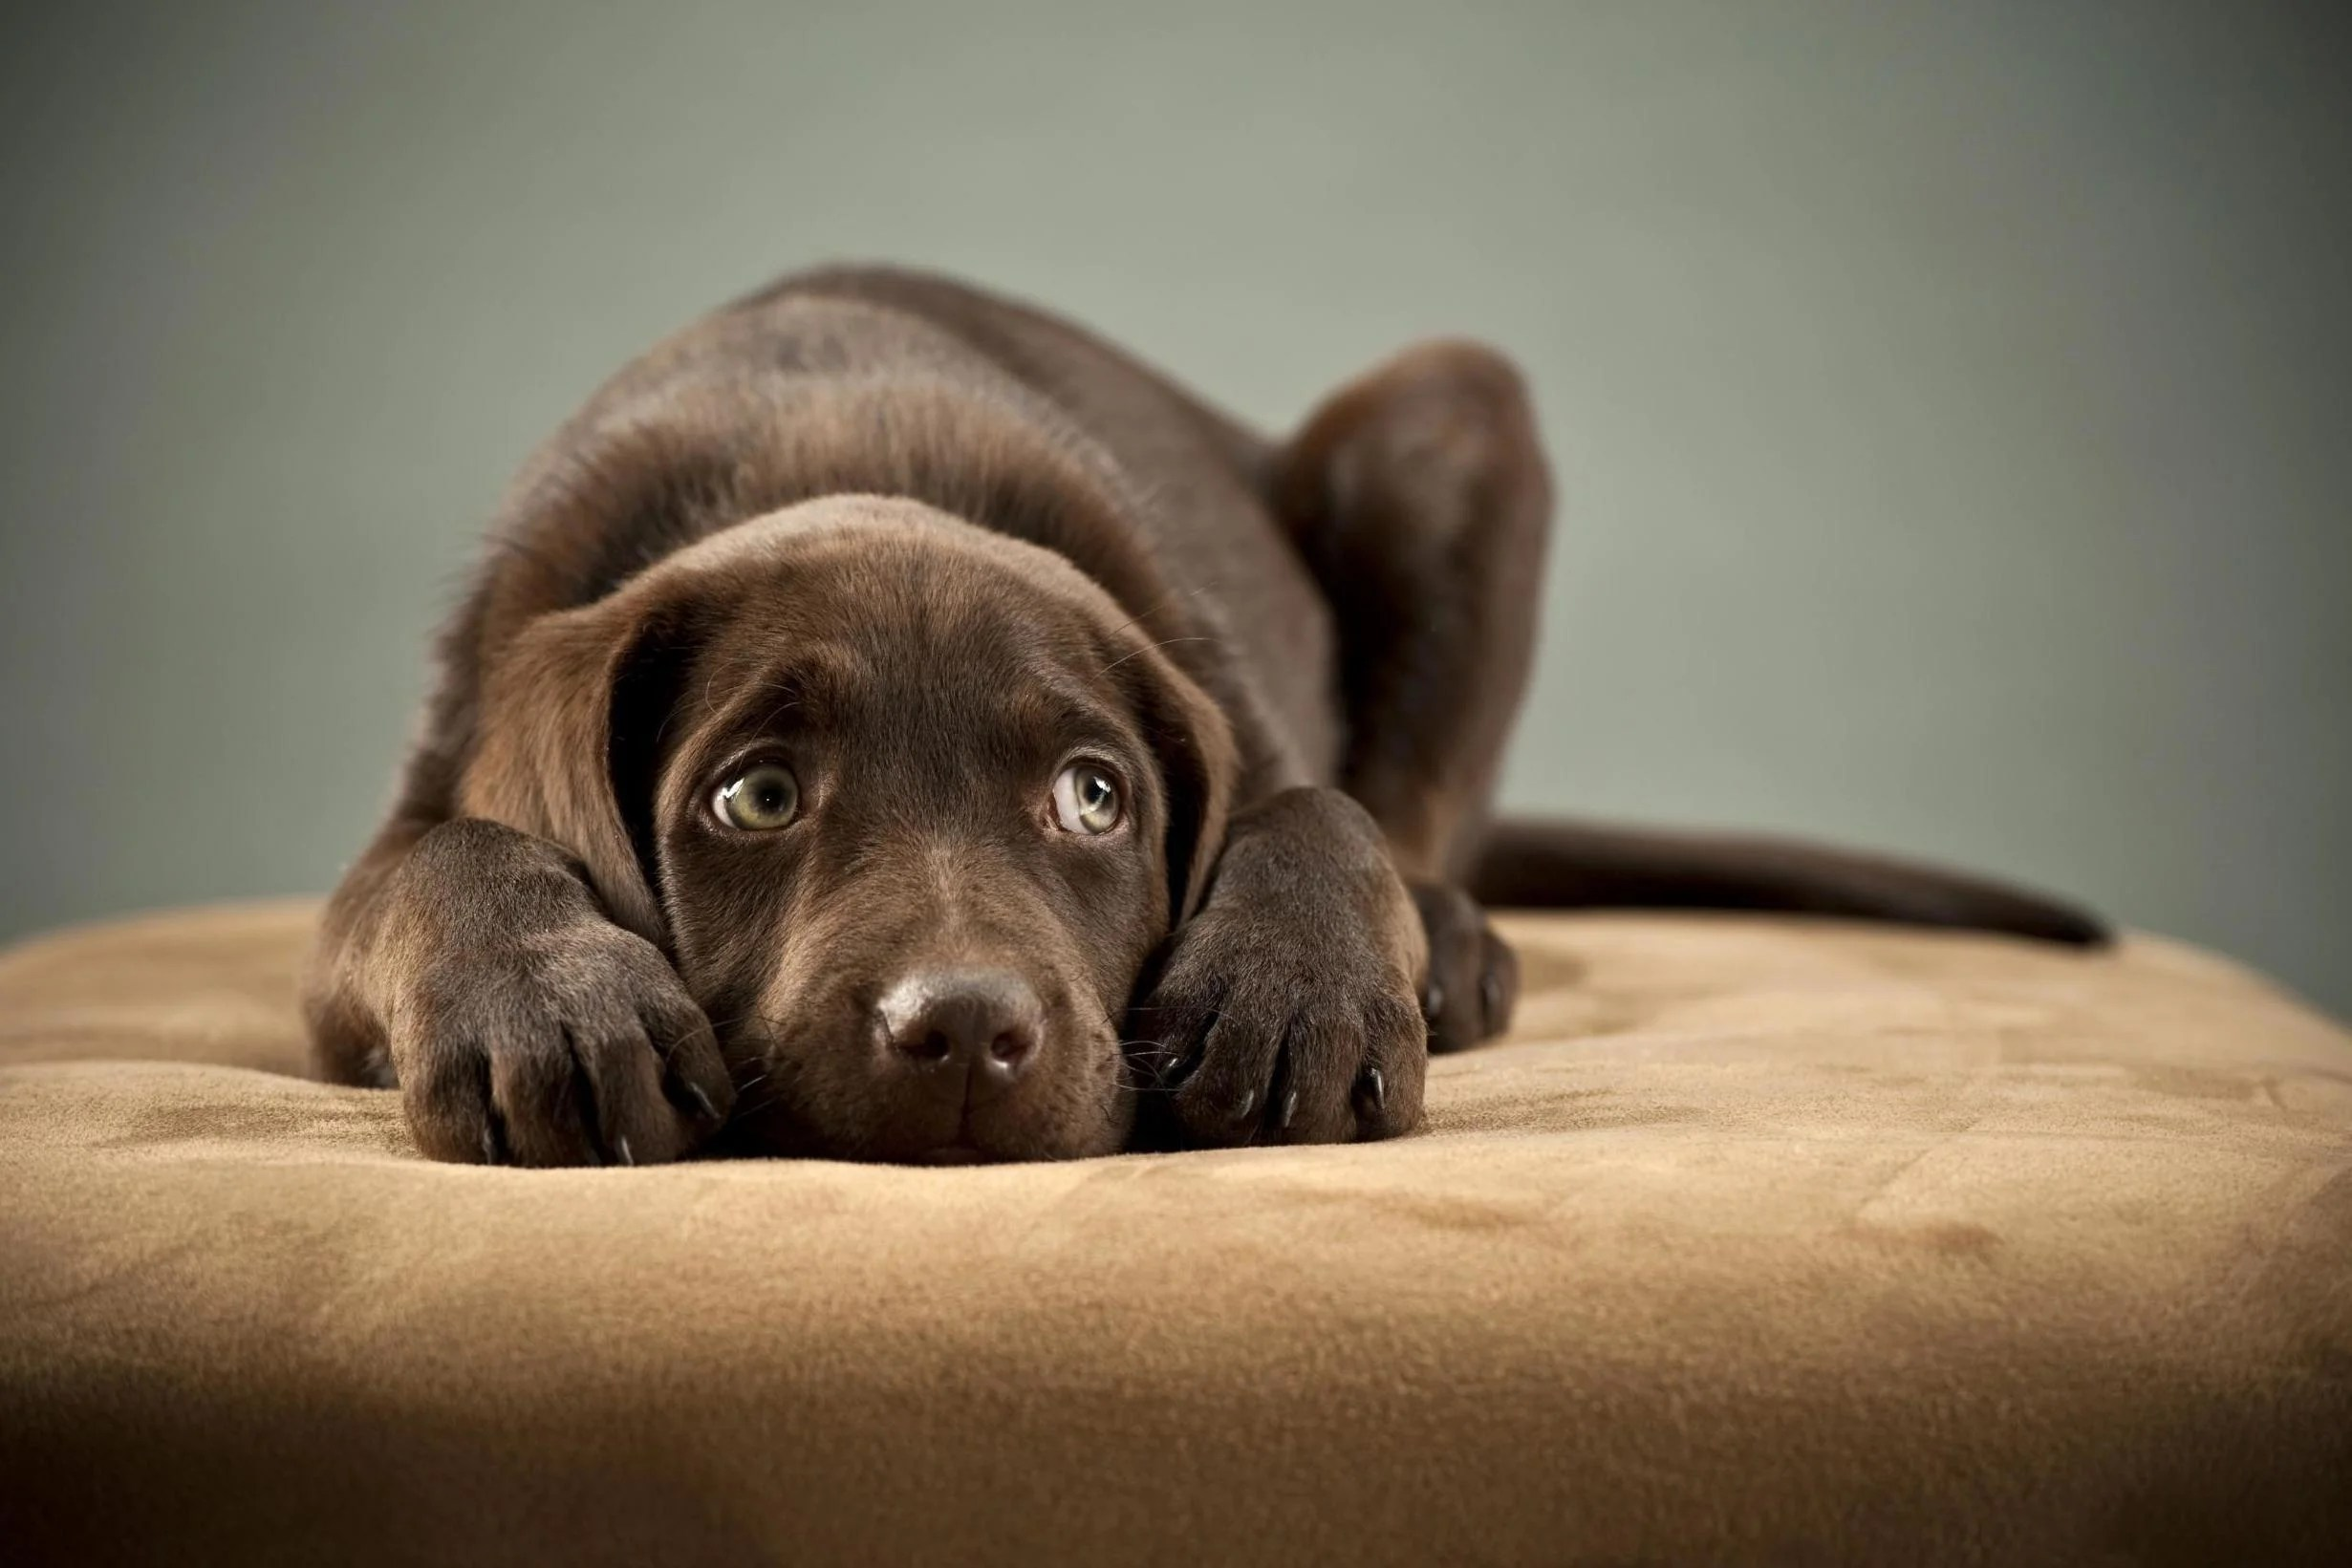 Majority Of Dogs Suffer From Anxiety Study Finds The Independent The Independent